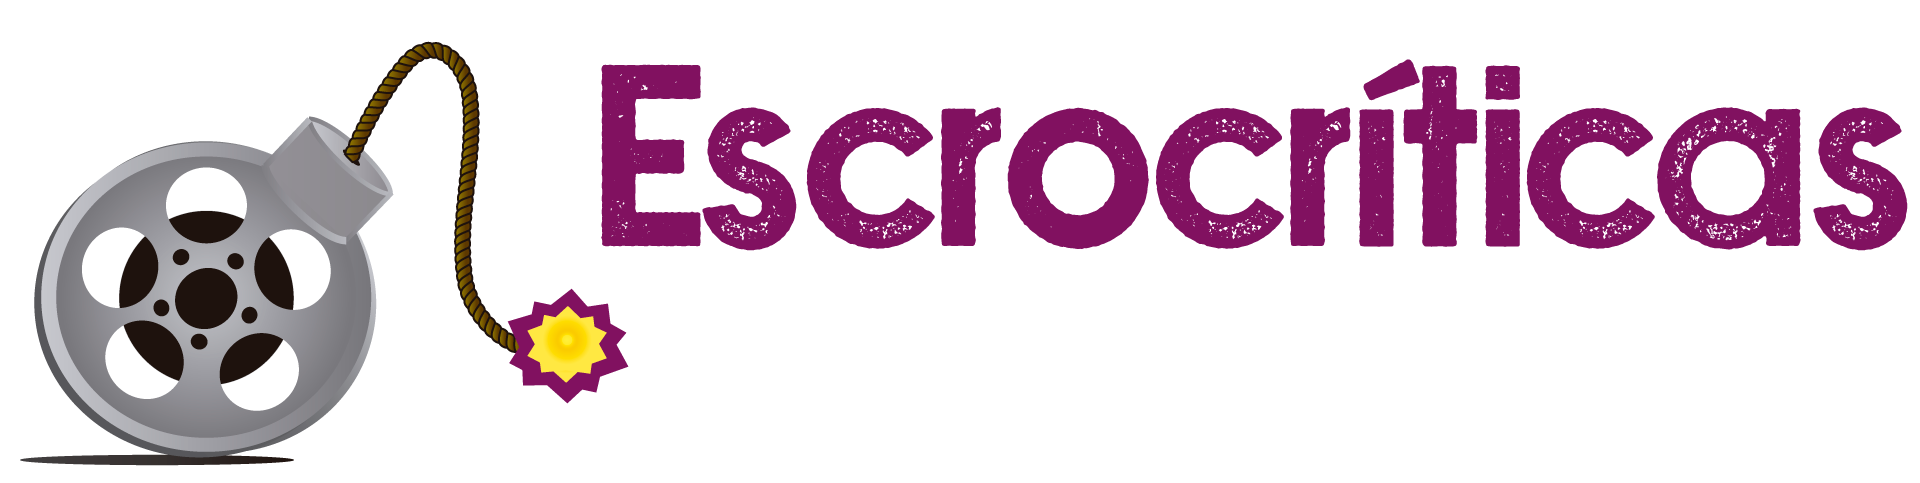 Escrocriticas - Cinema, Séries e Acidez